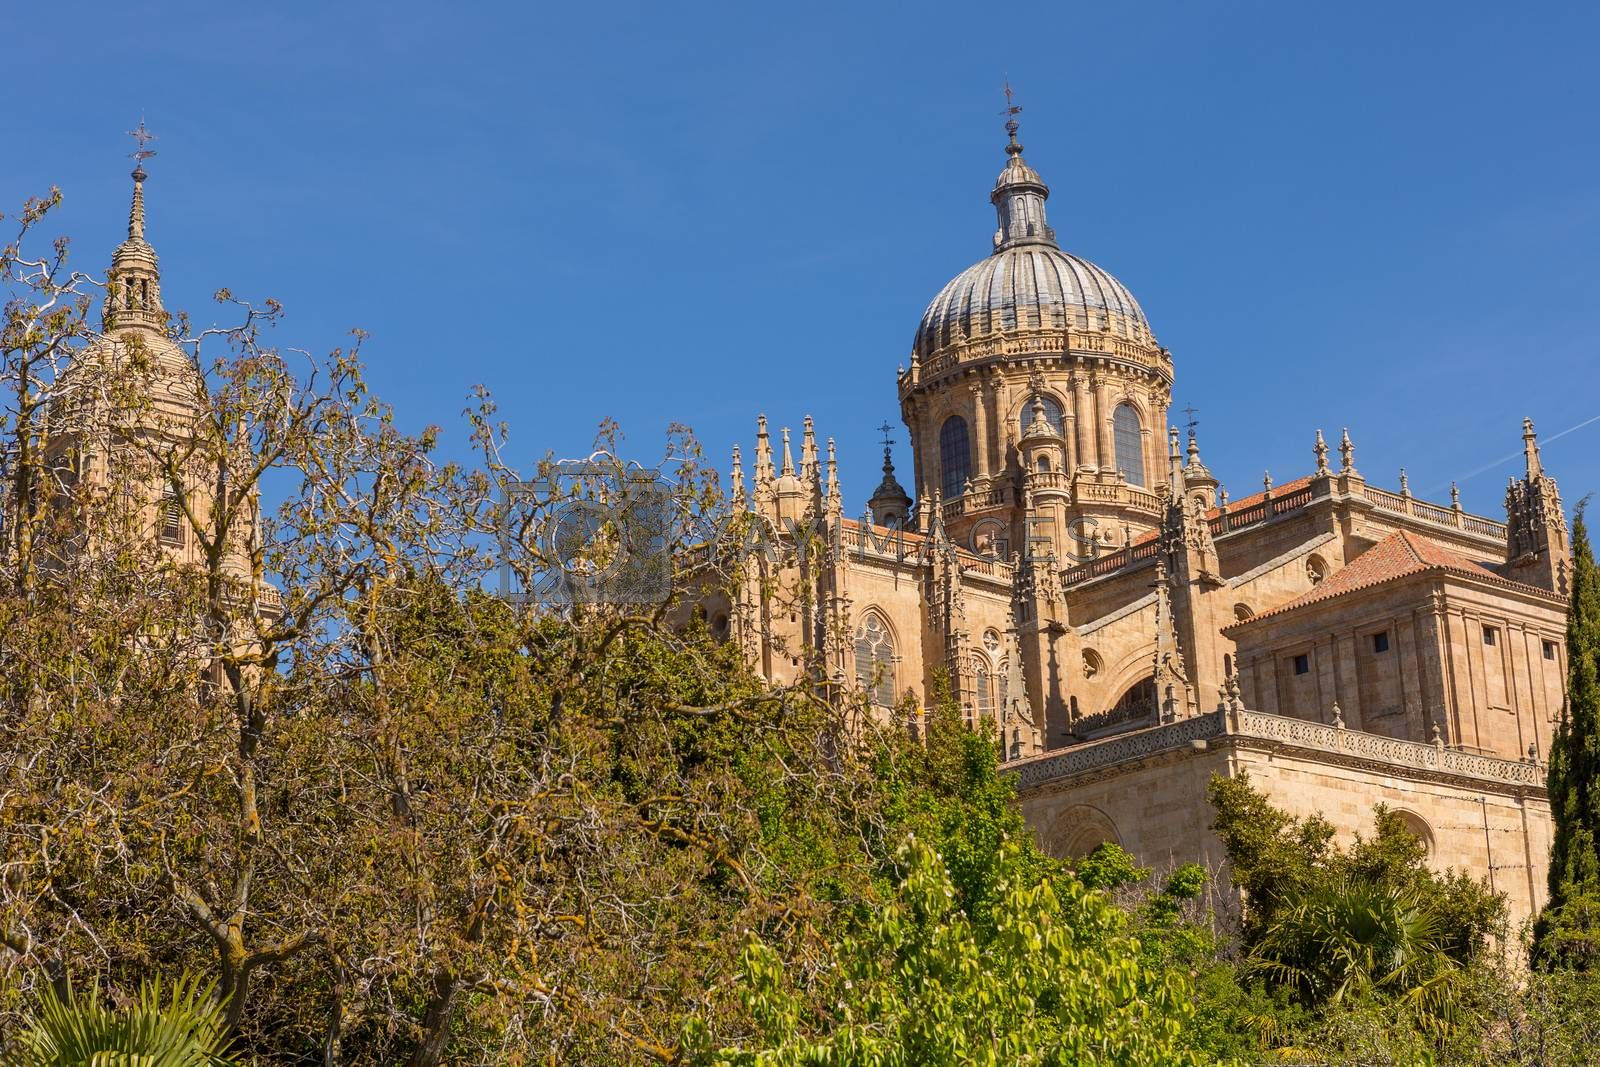 View of the historical Salamanca Cathedral, Spain